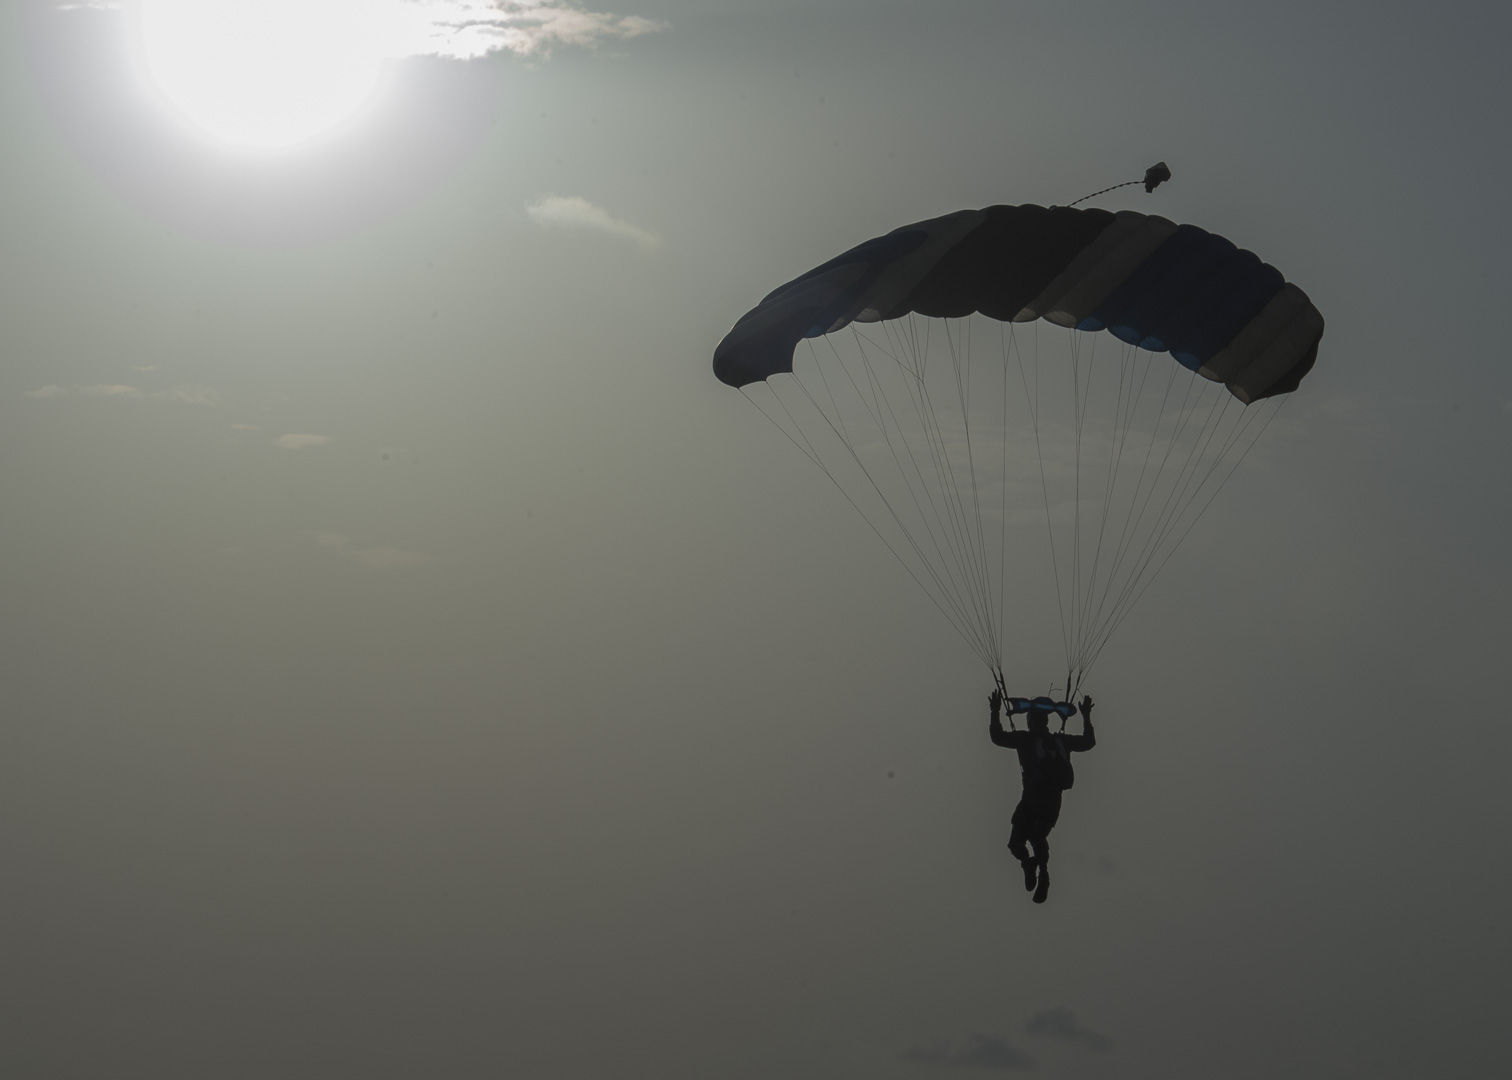 A French Forces soldier prepares to land on a drop zone after a High Altitude, Low Opening (HALO) jump outside Djibouti City, Djibouti, Sept. 29, 2019.  American service members and coalition partners jumped together to celebrate the Feast Day of Archangel Michael, the patron saint of paratroopers. (U.S. Air Force Photo by Senior Airman Codie Trimble) (U.S. Air Force Photo by Senior Airman Codie Trimble)